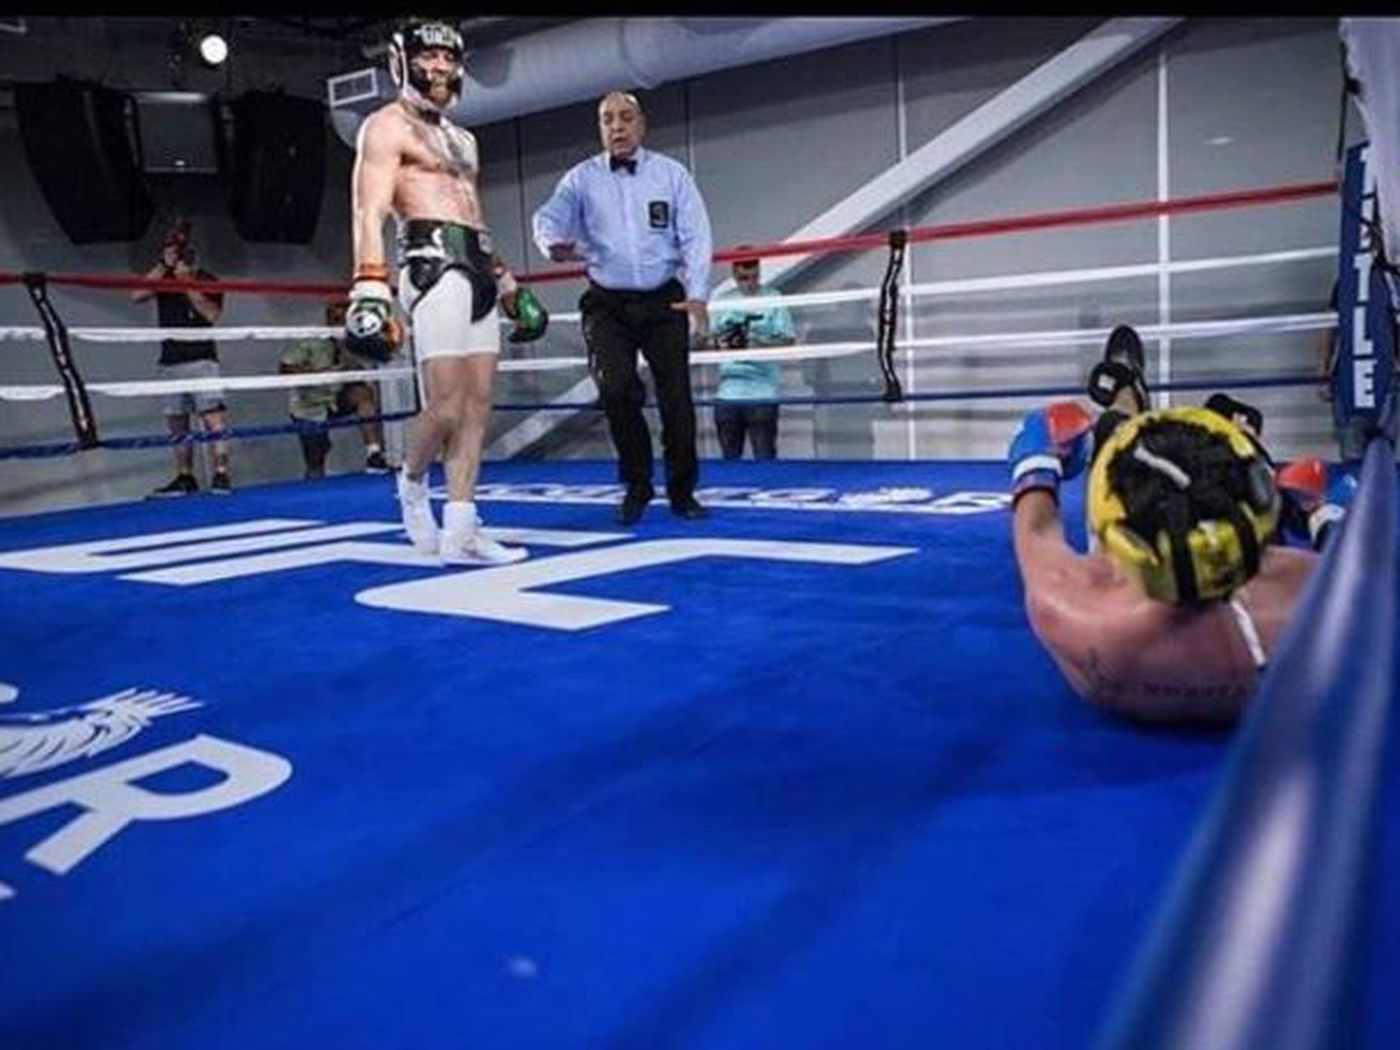 Paulie Malignaggi vs. Conor McGregor sparring video to be released on Netflix - Conor McGregor